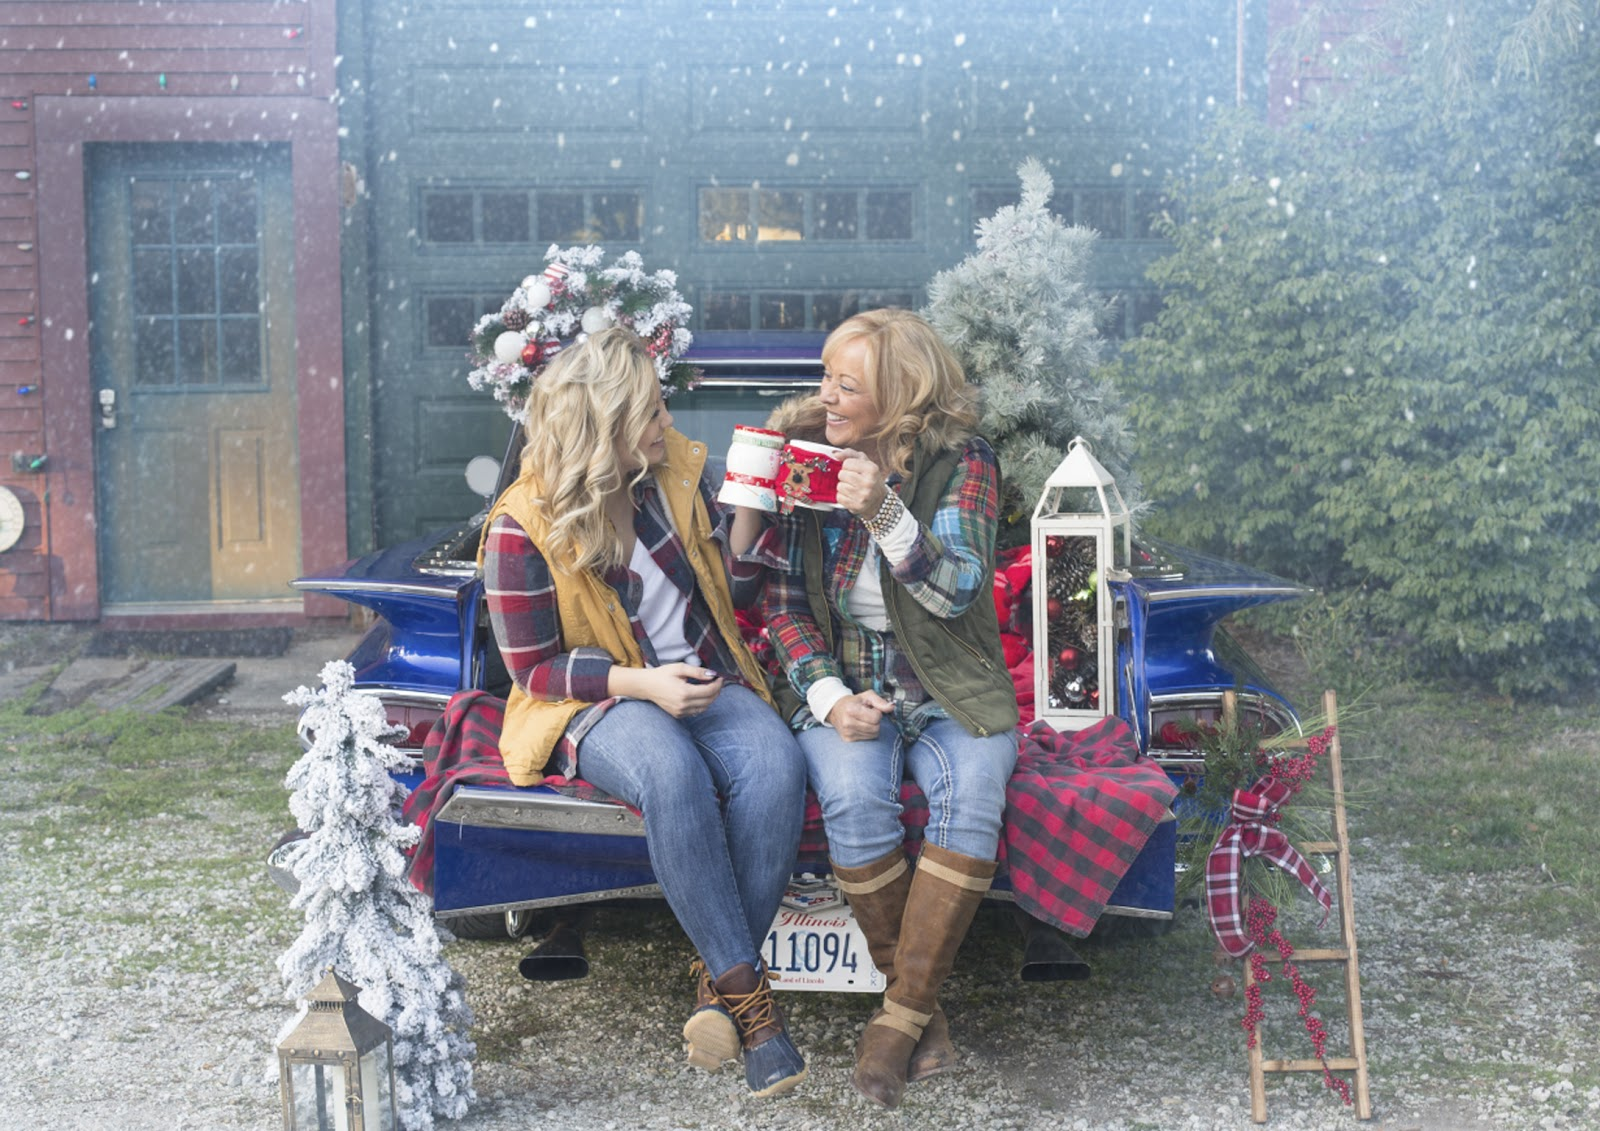 fun christmas card pose of two women sitting in the snow on a truck with hot chocolate at a christmas tree farm